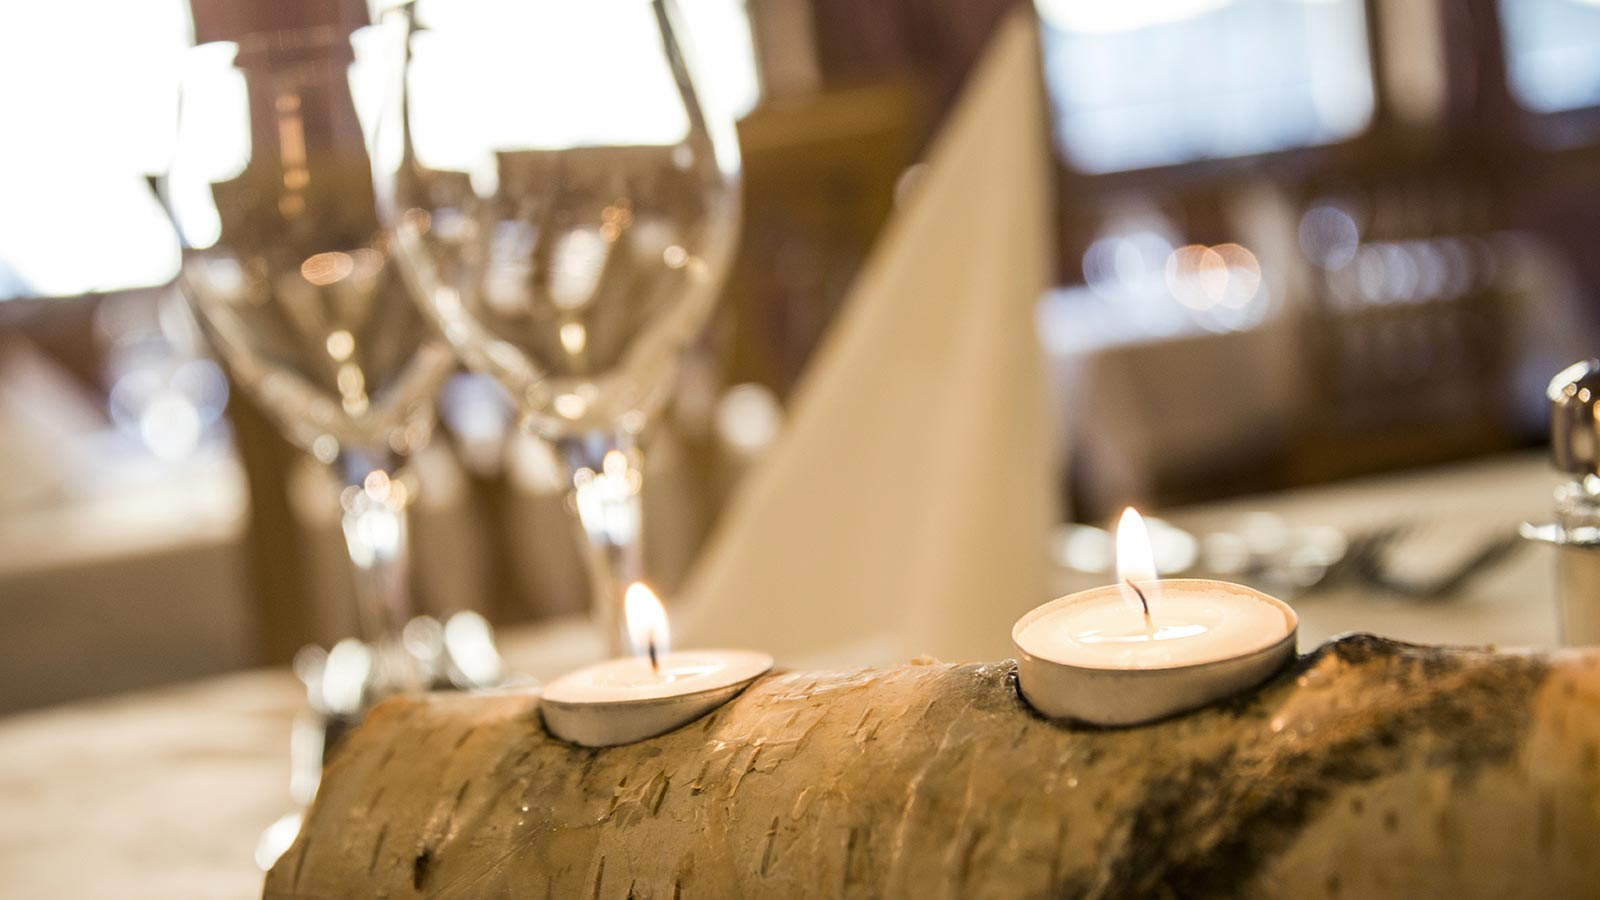 Table decoration made of wood with lighted candles and glass goblets in the background